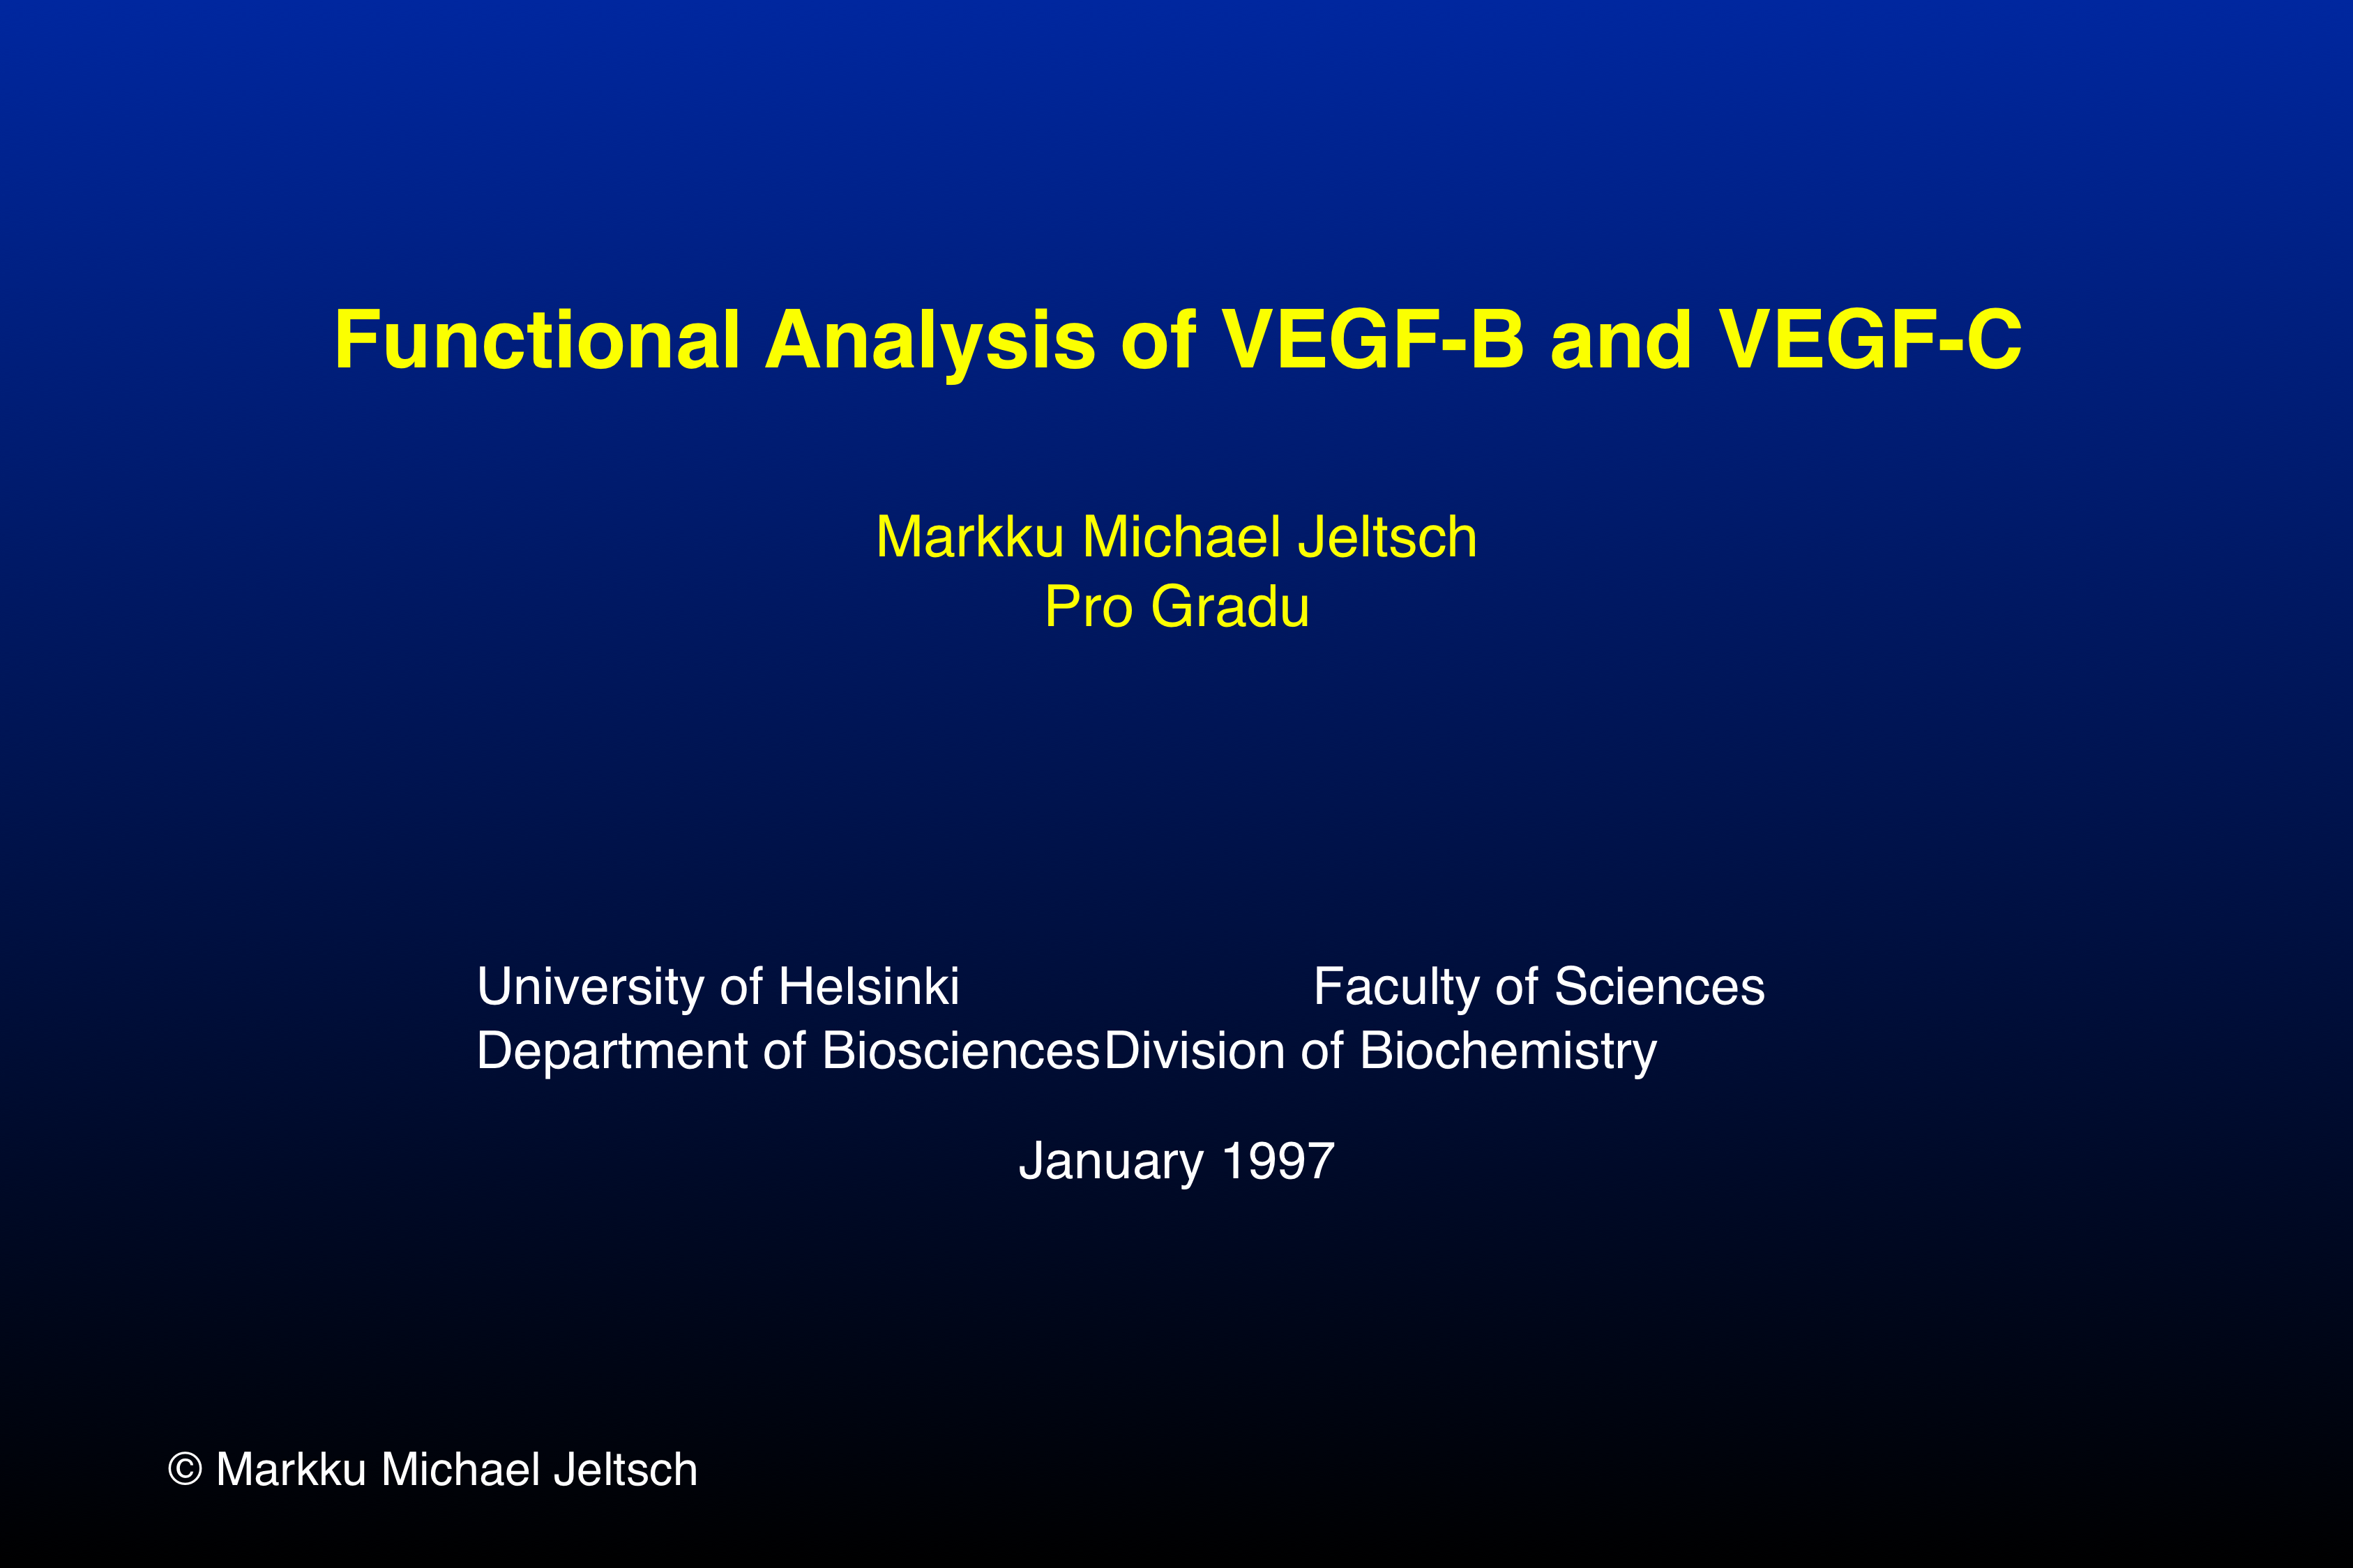 Title slide: Functional Analysis of VEGF-B and VEGF-C